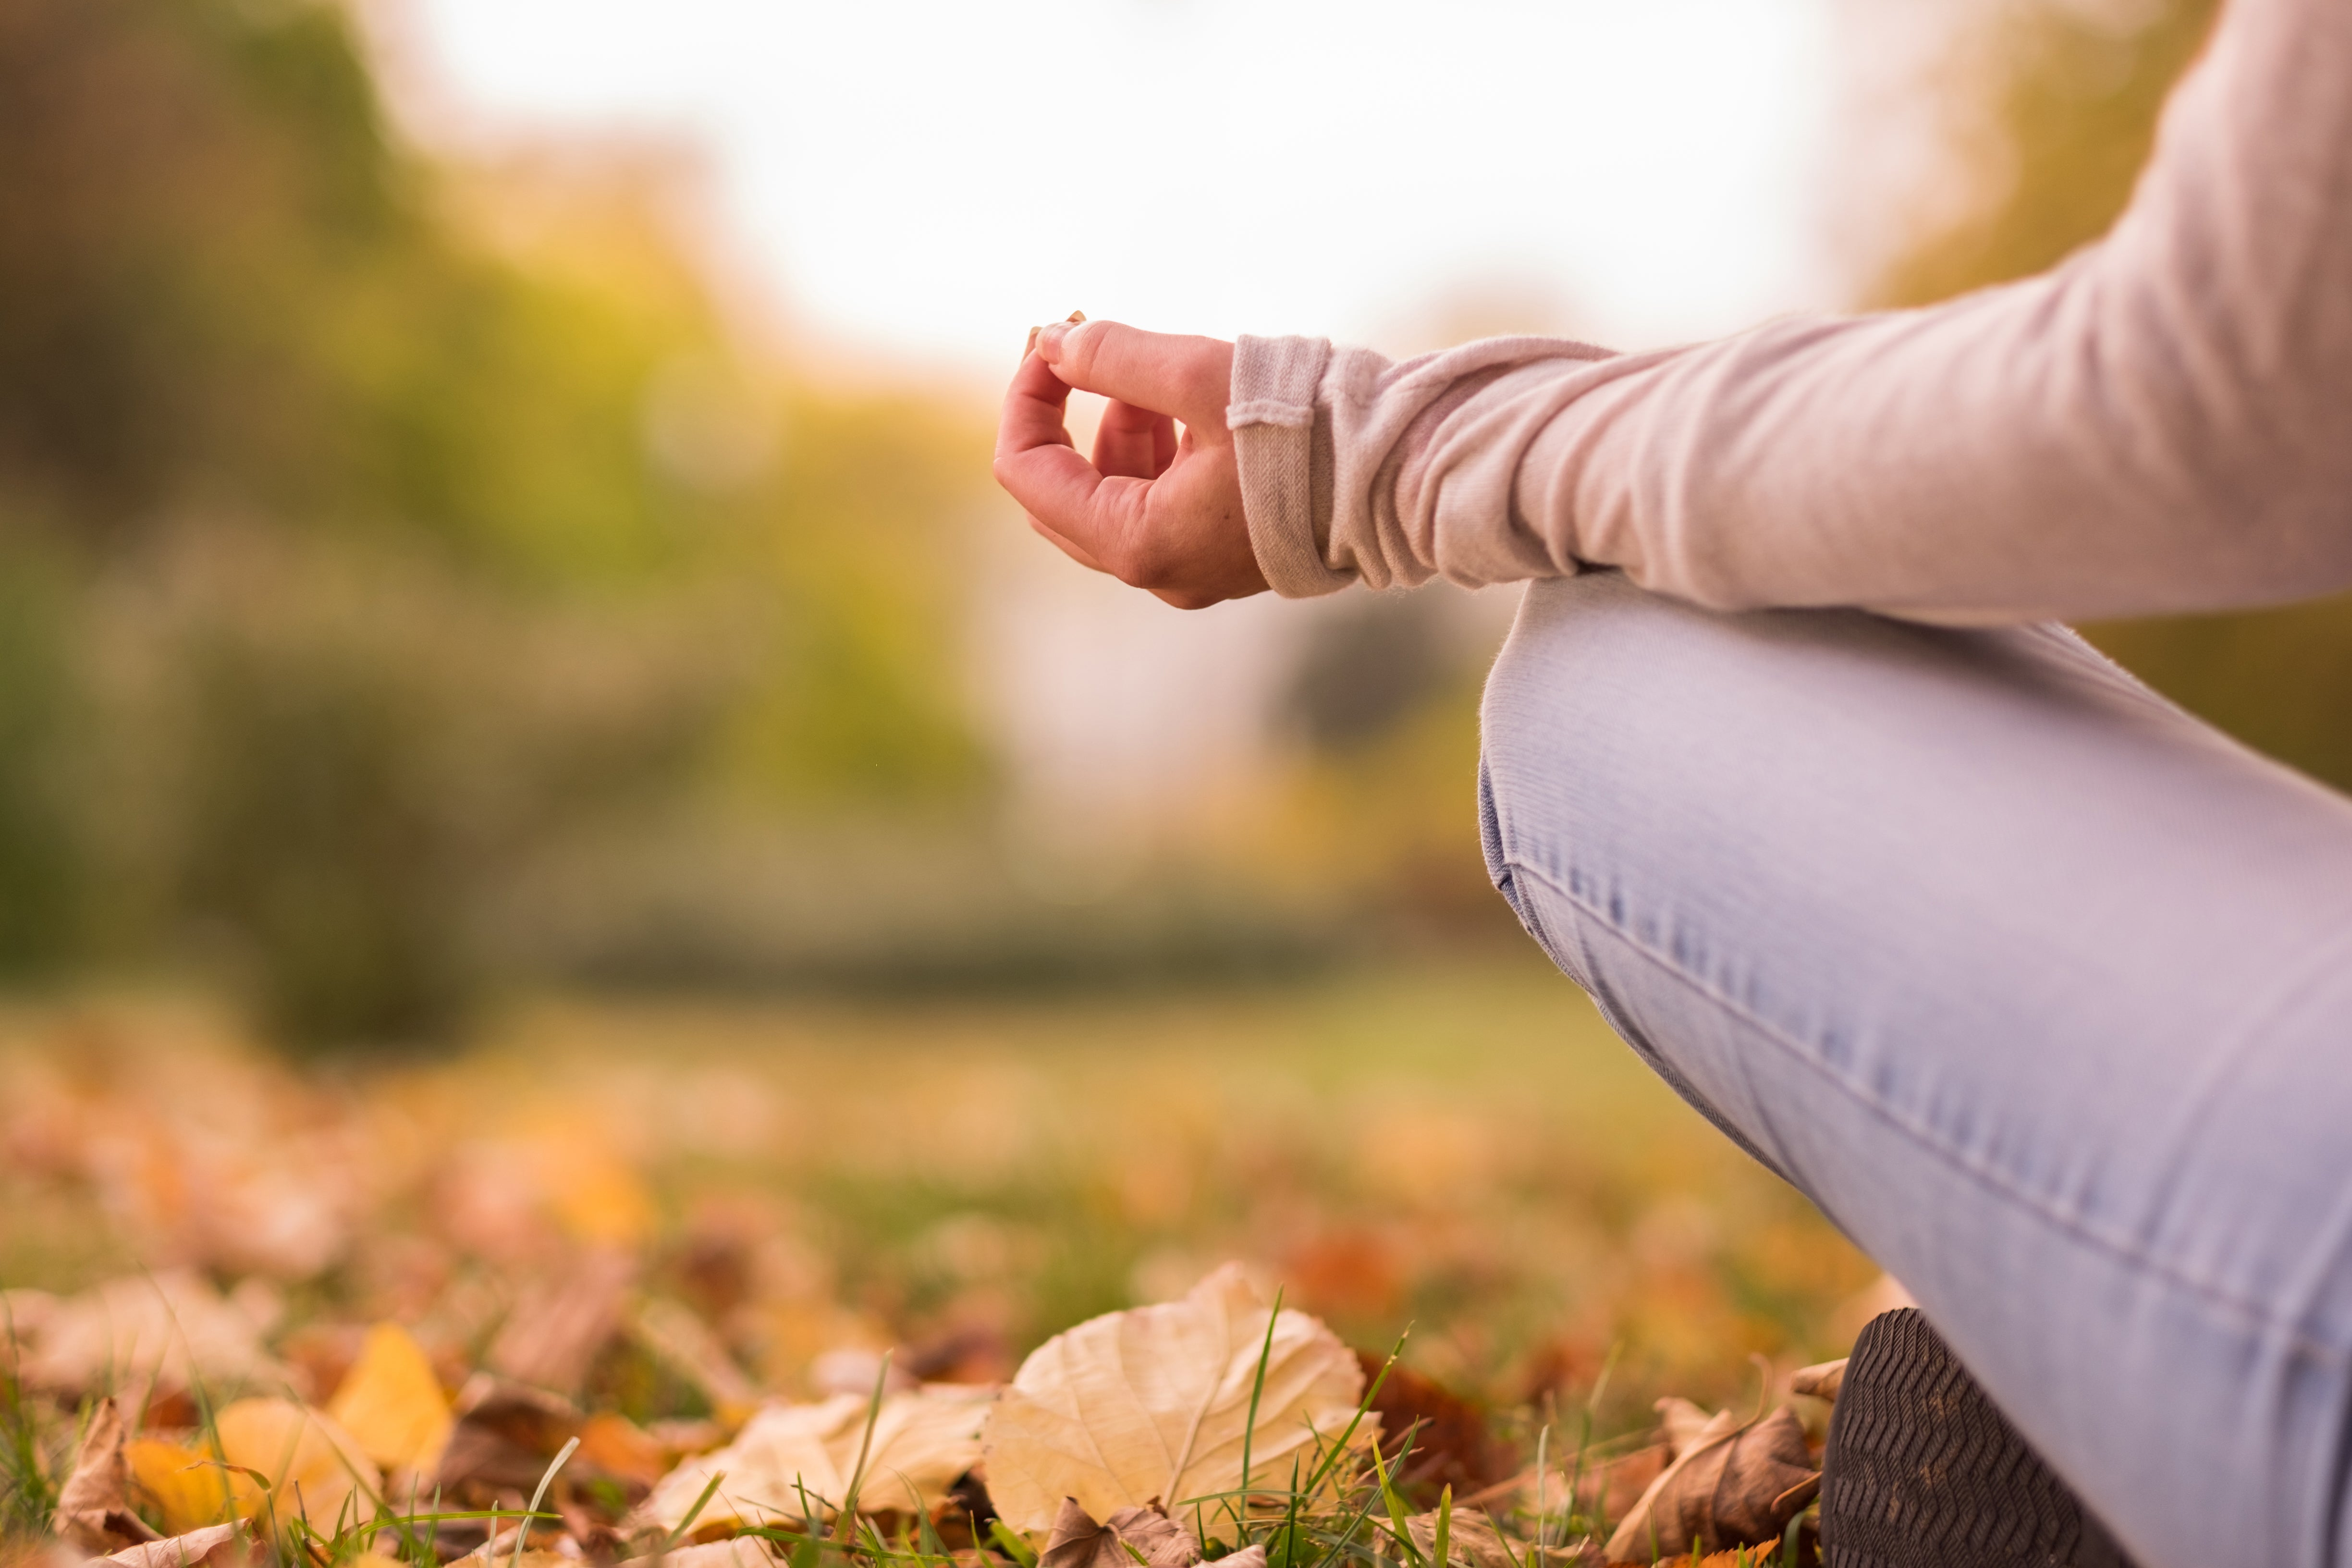 person doing yoga and breathing exercises to improve wellness